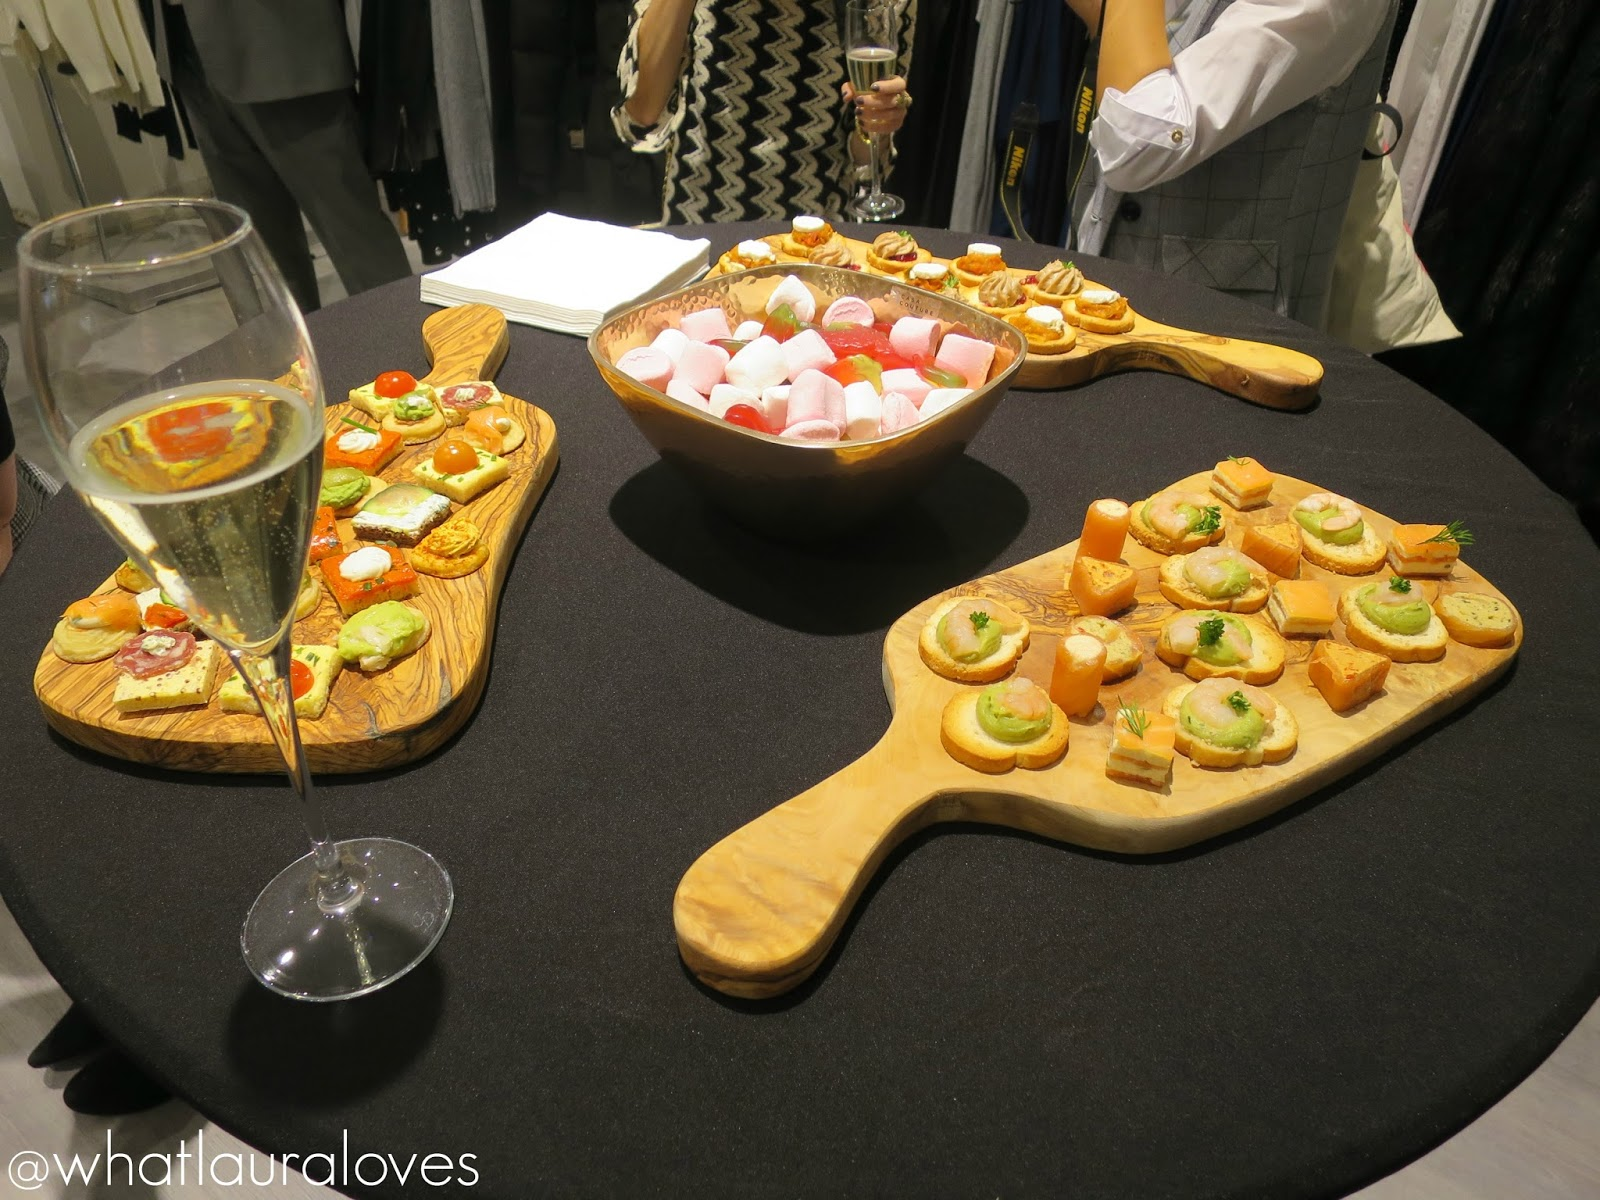 Canapés from House of Fraser